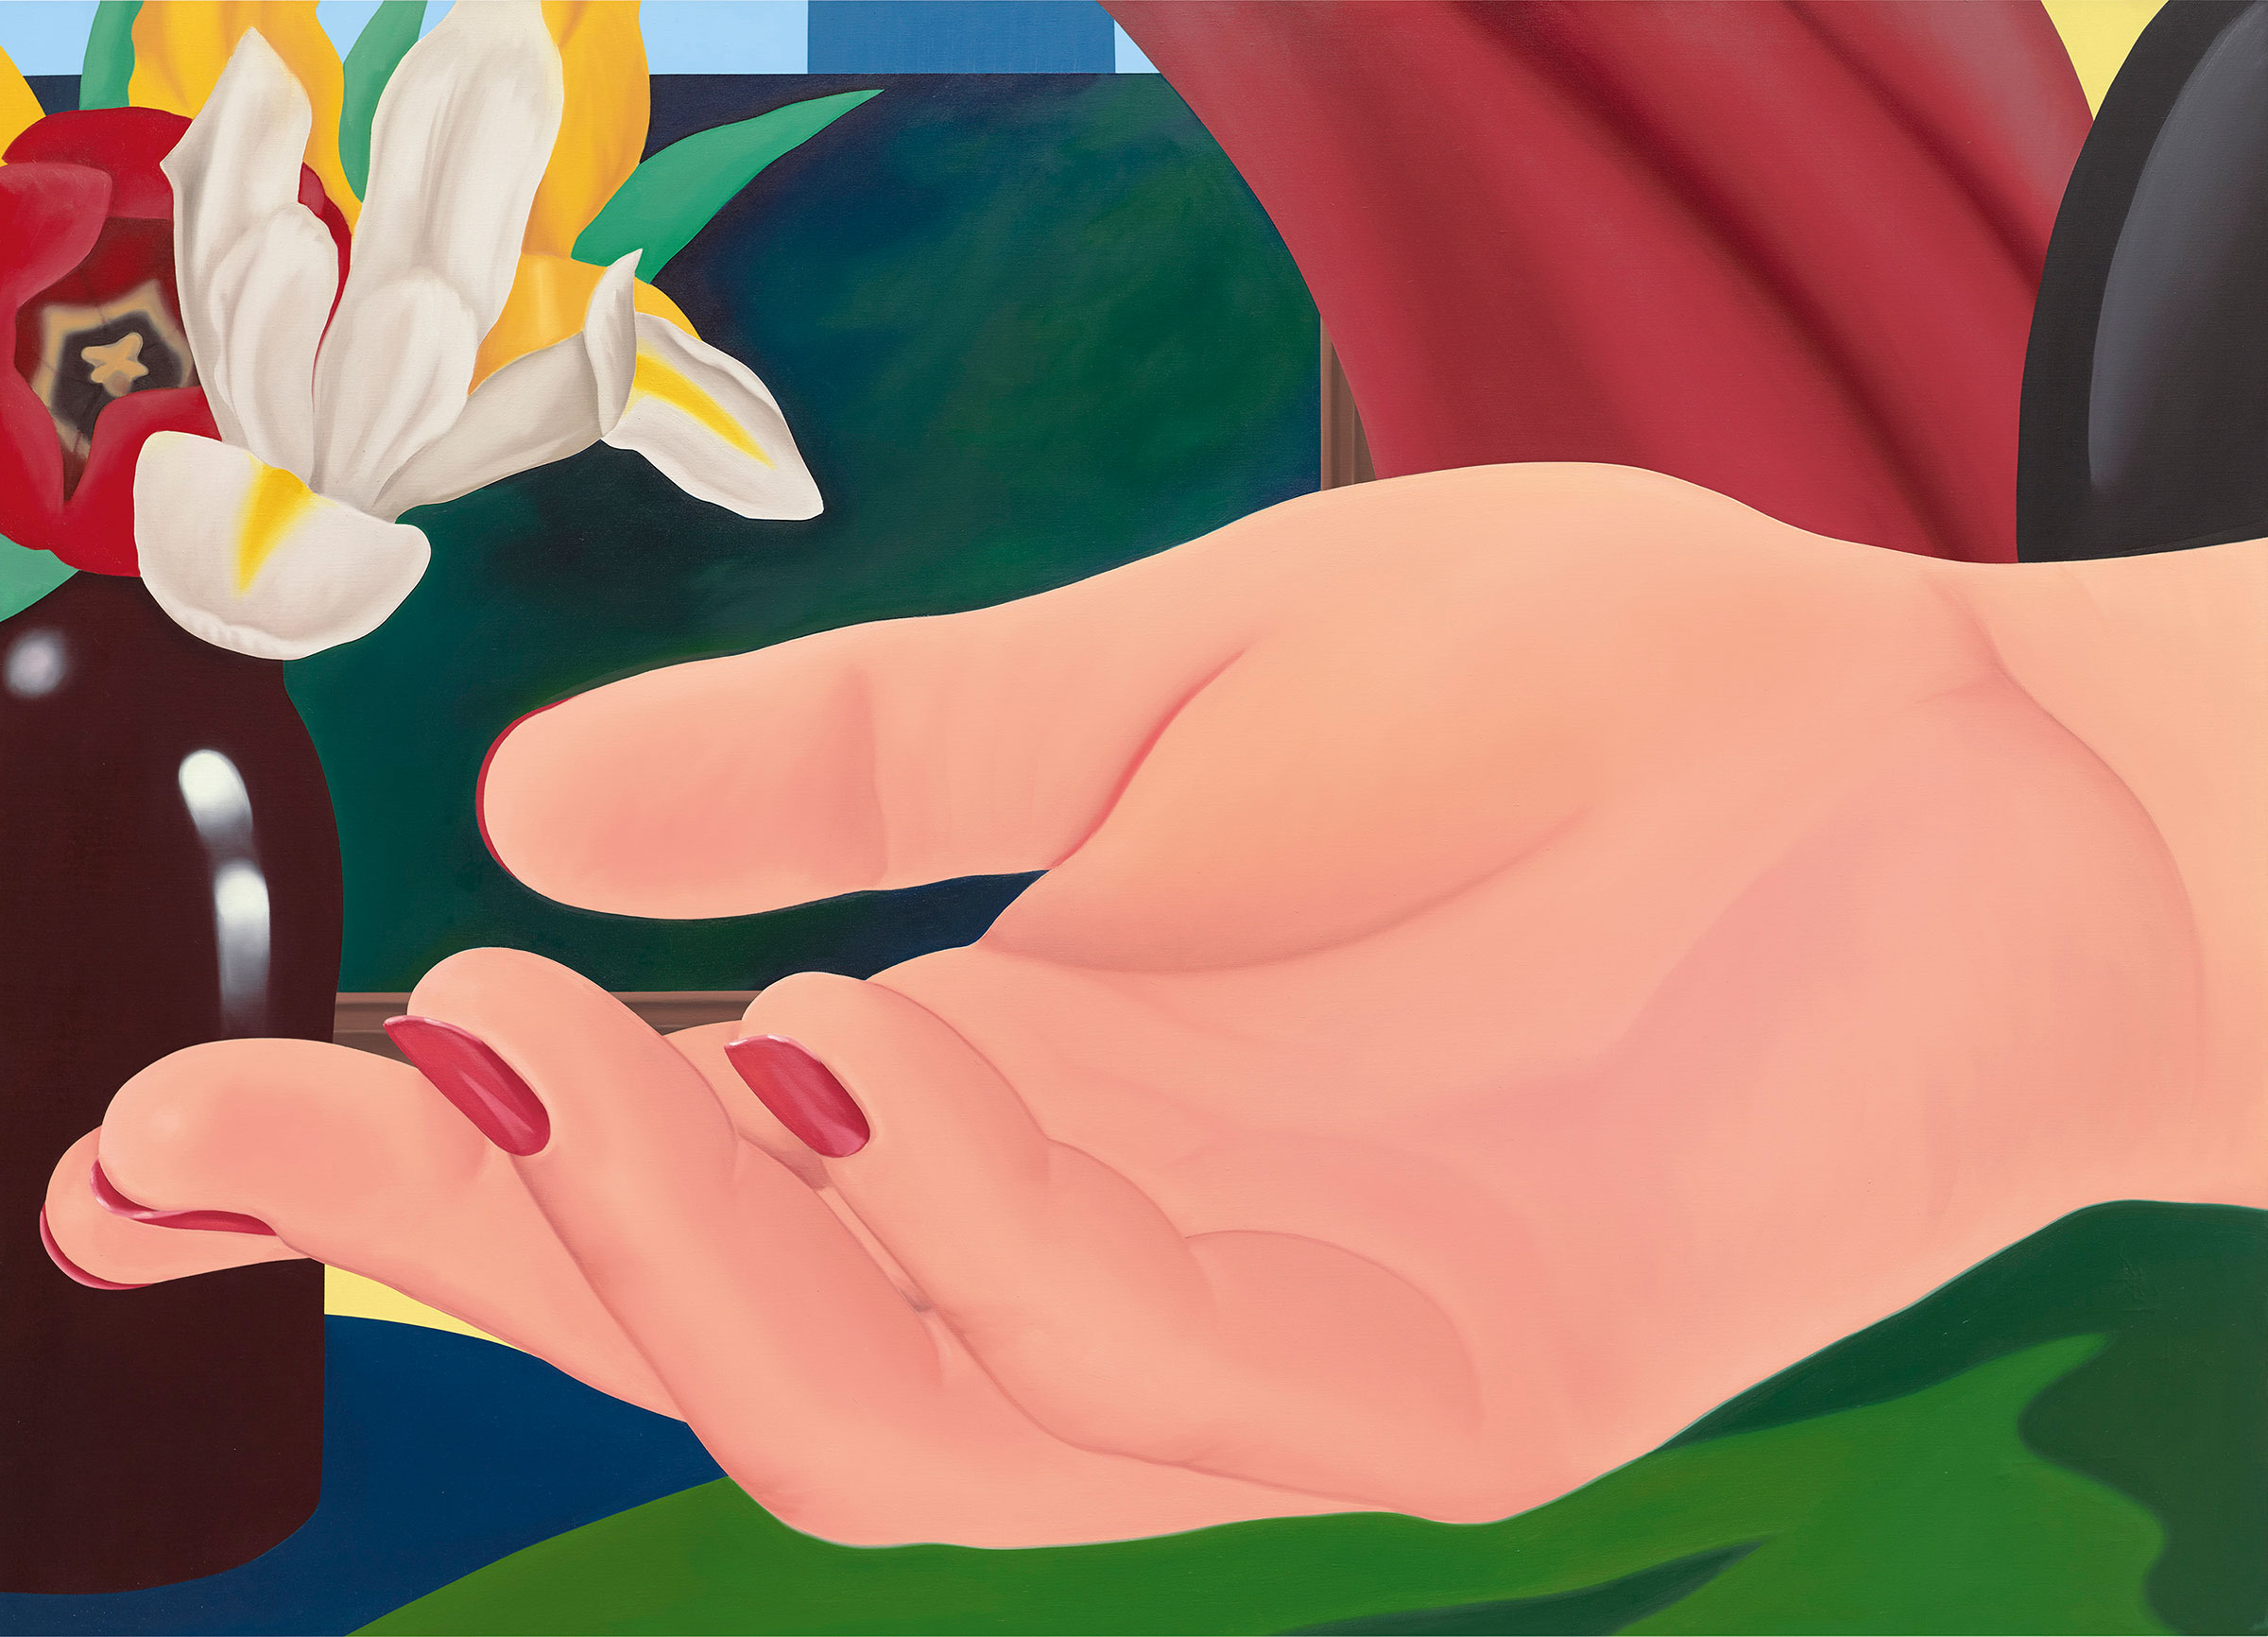 Tom Wesselmann, Ginas Hand, 1972-1982. Oil on canvas, 149.9 × 208.3 cm (59 × 82 in), on view at Gagosian Davies Street